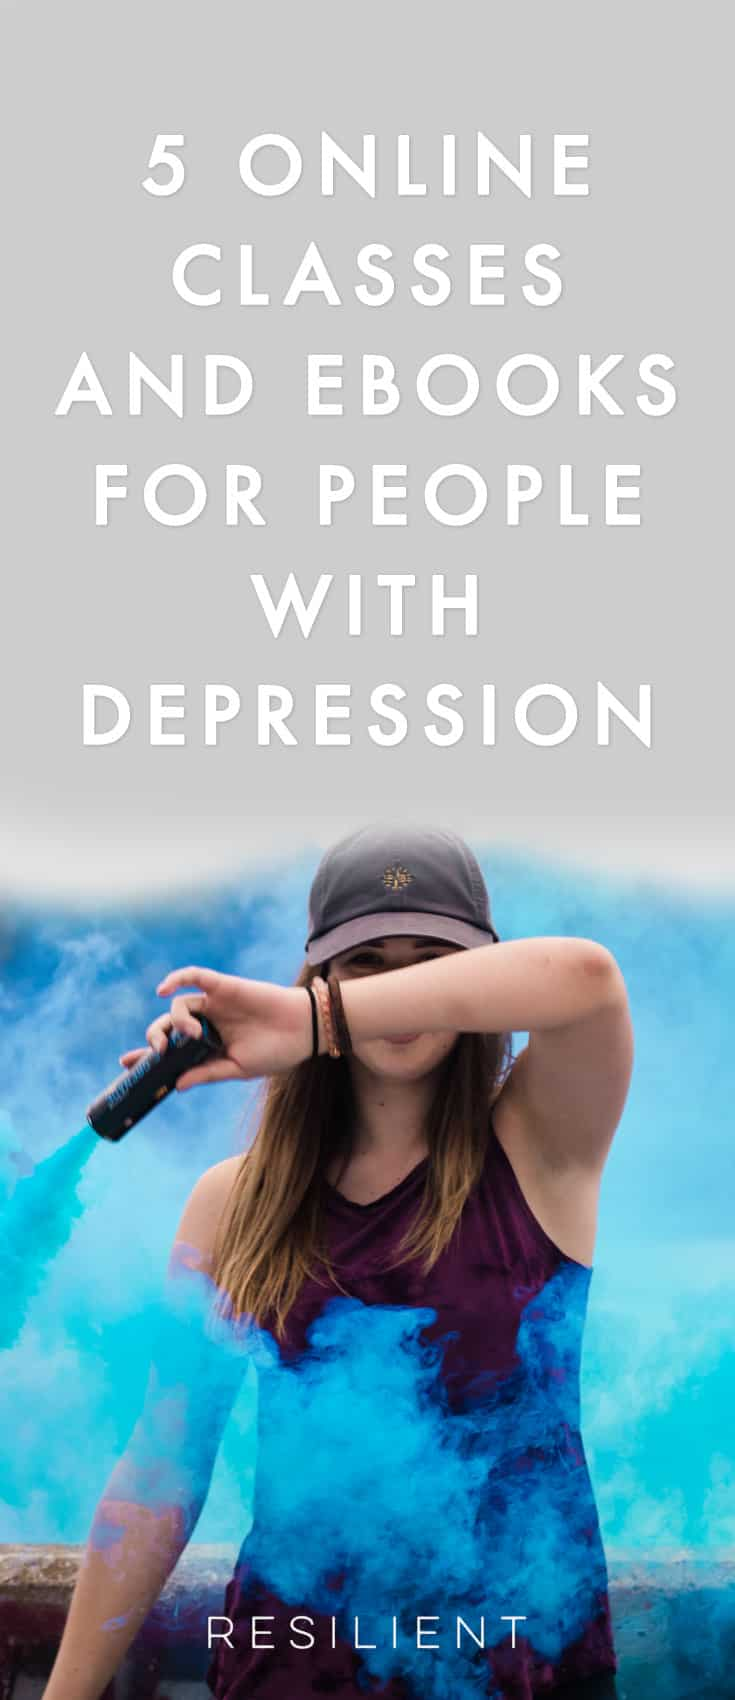 If you're looking for a way to improve feelings of depression and live a happier life, here are our suggestions for 5 of our online classes and ebooks for people with depression.